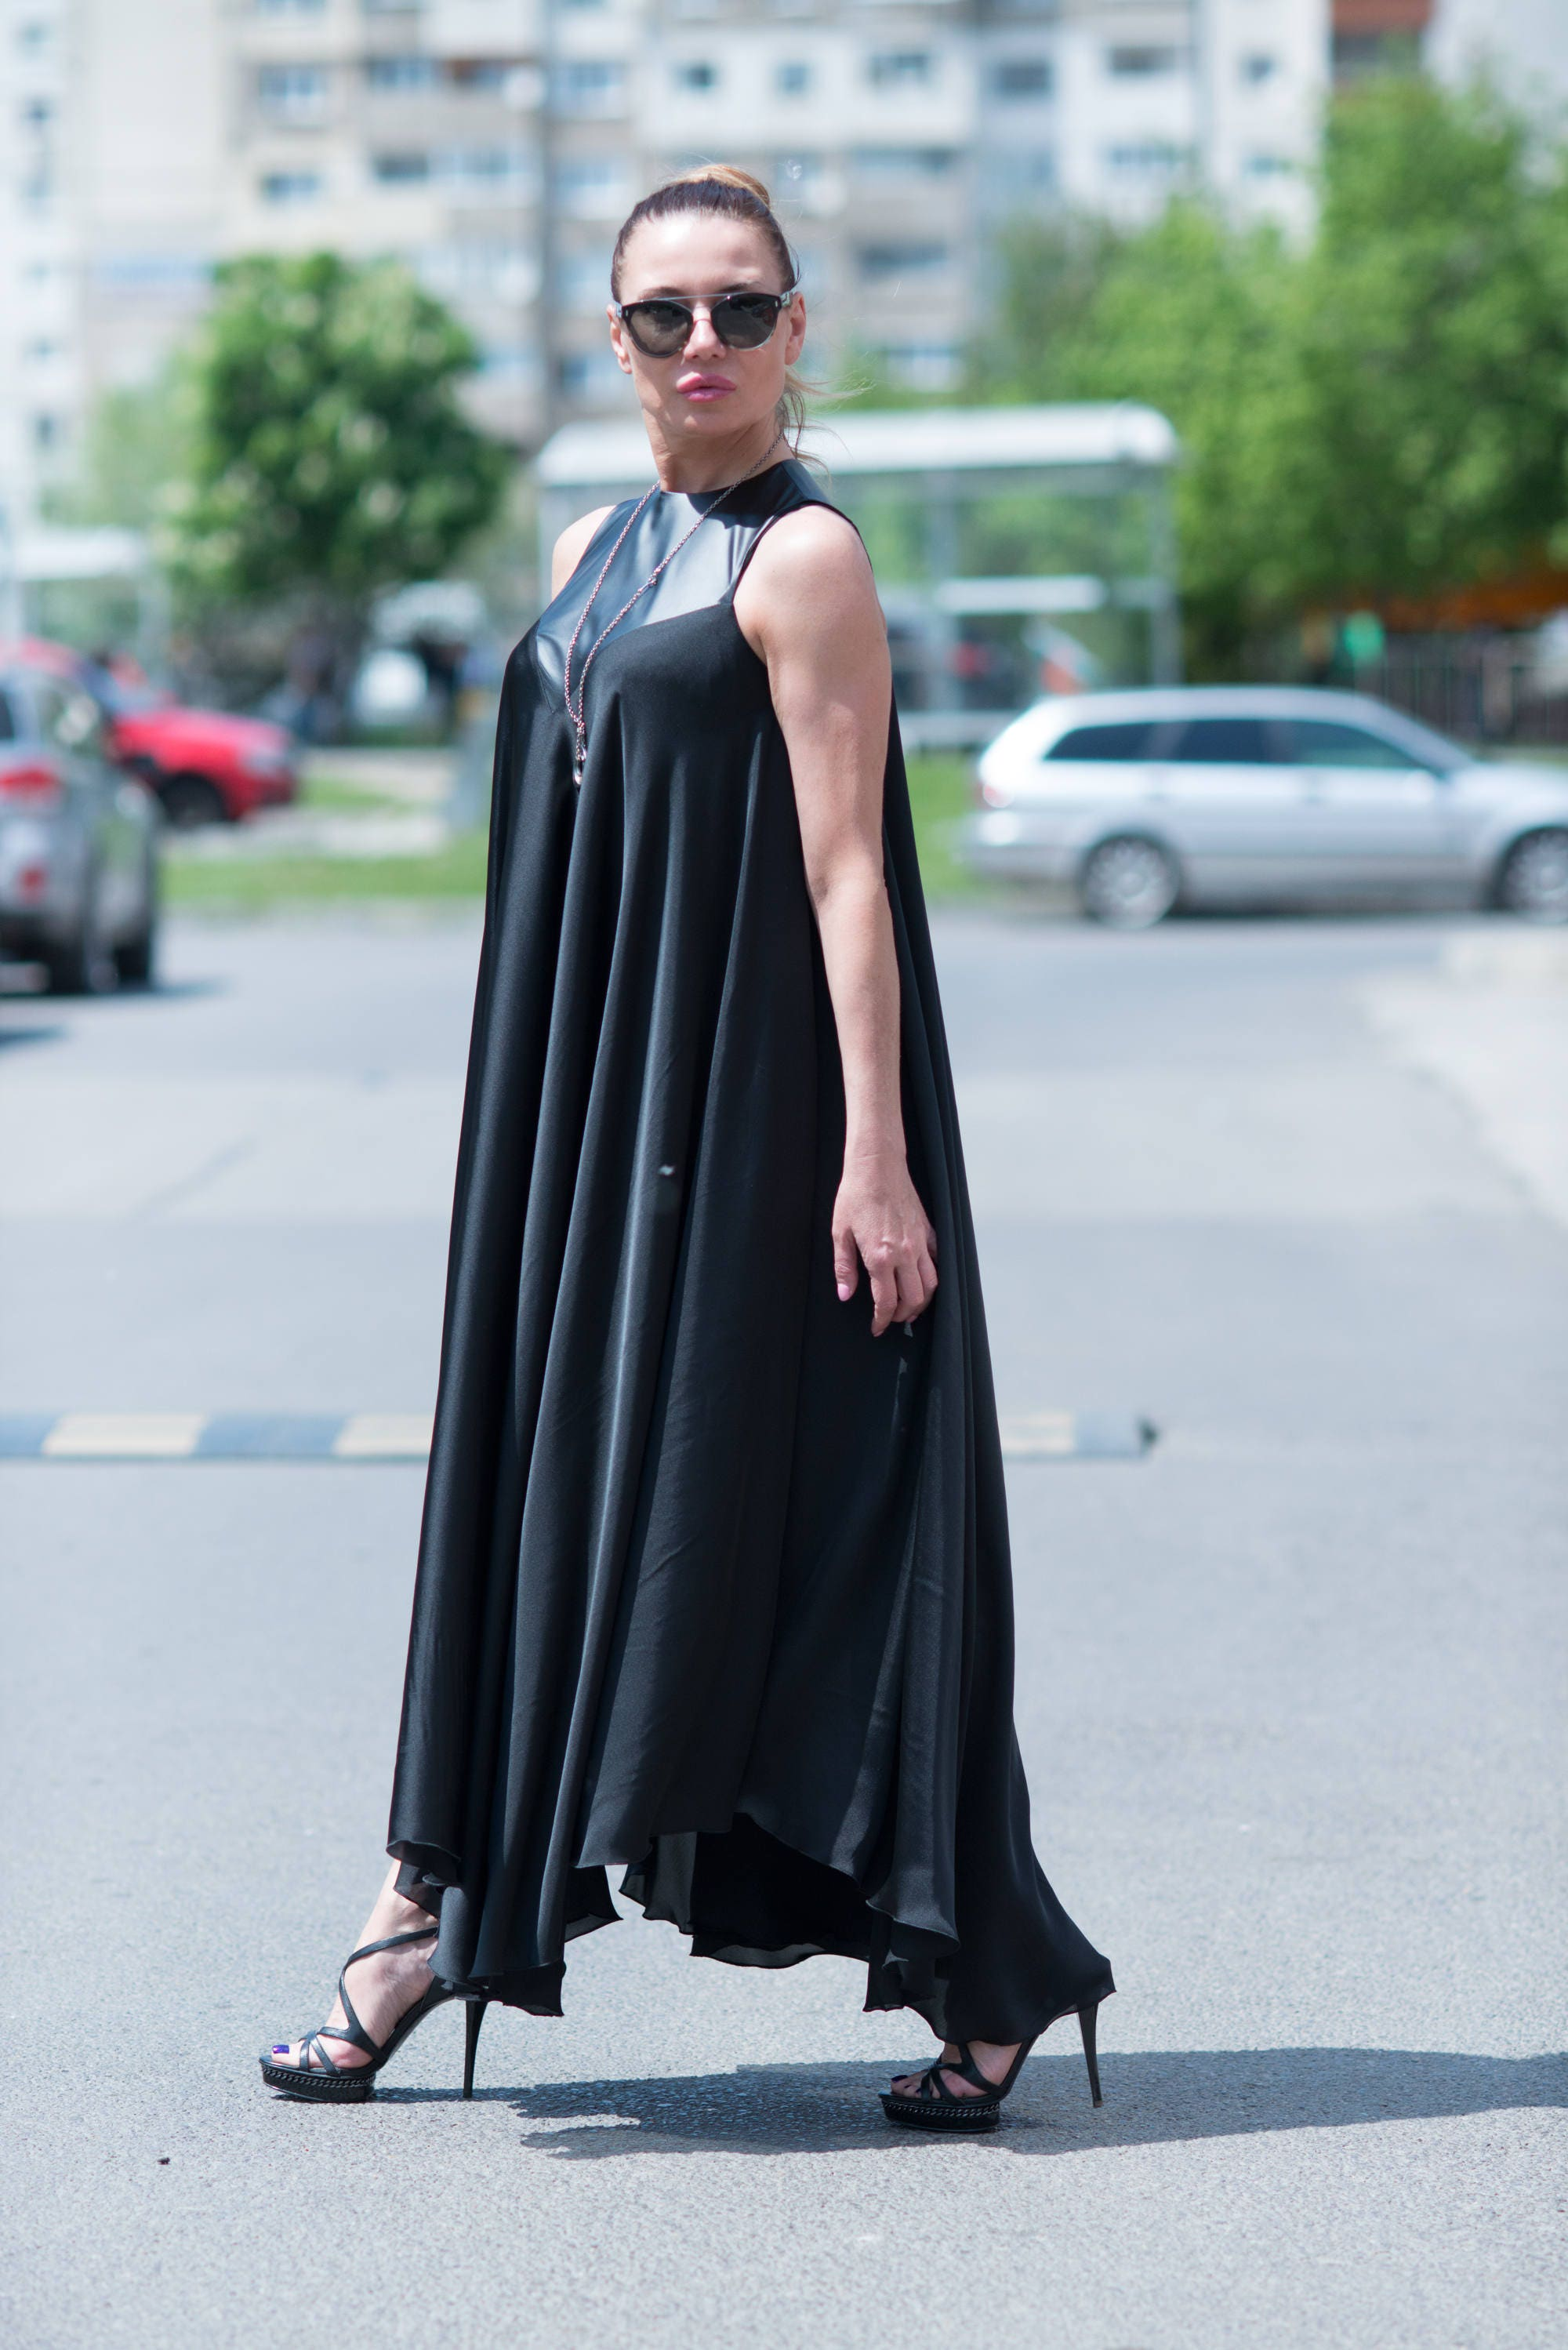 Black Maxi Dress, Satin Kaftan, Summer Dress, Party Dress, Kaftan ...